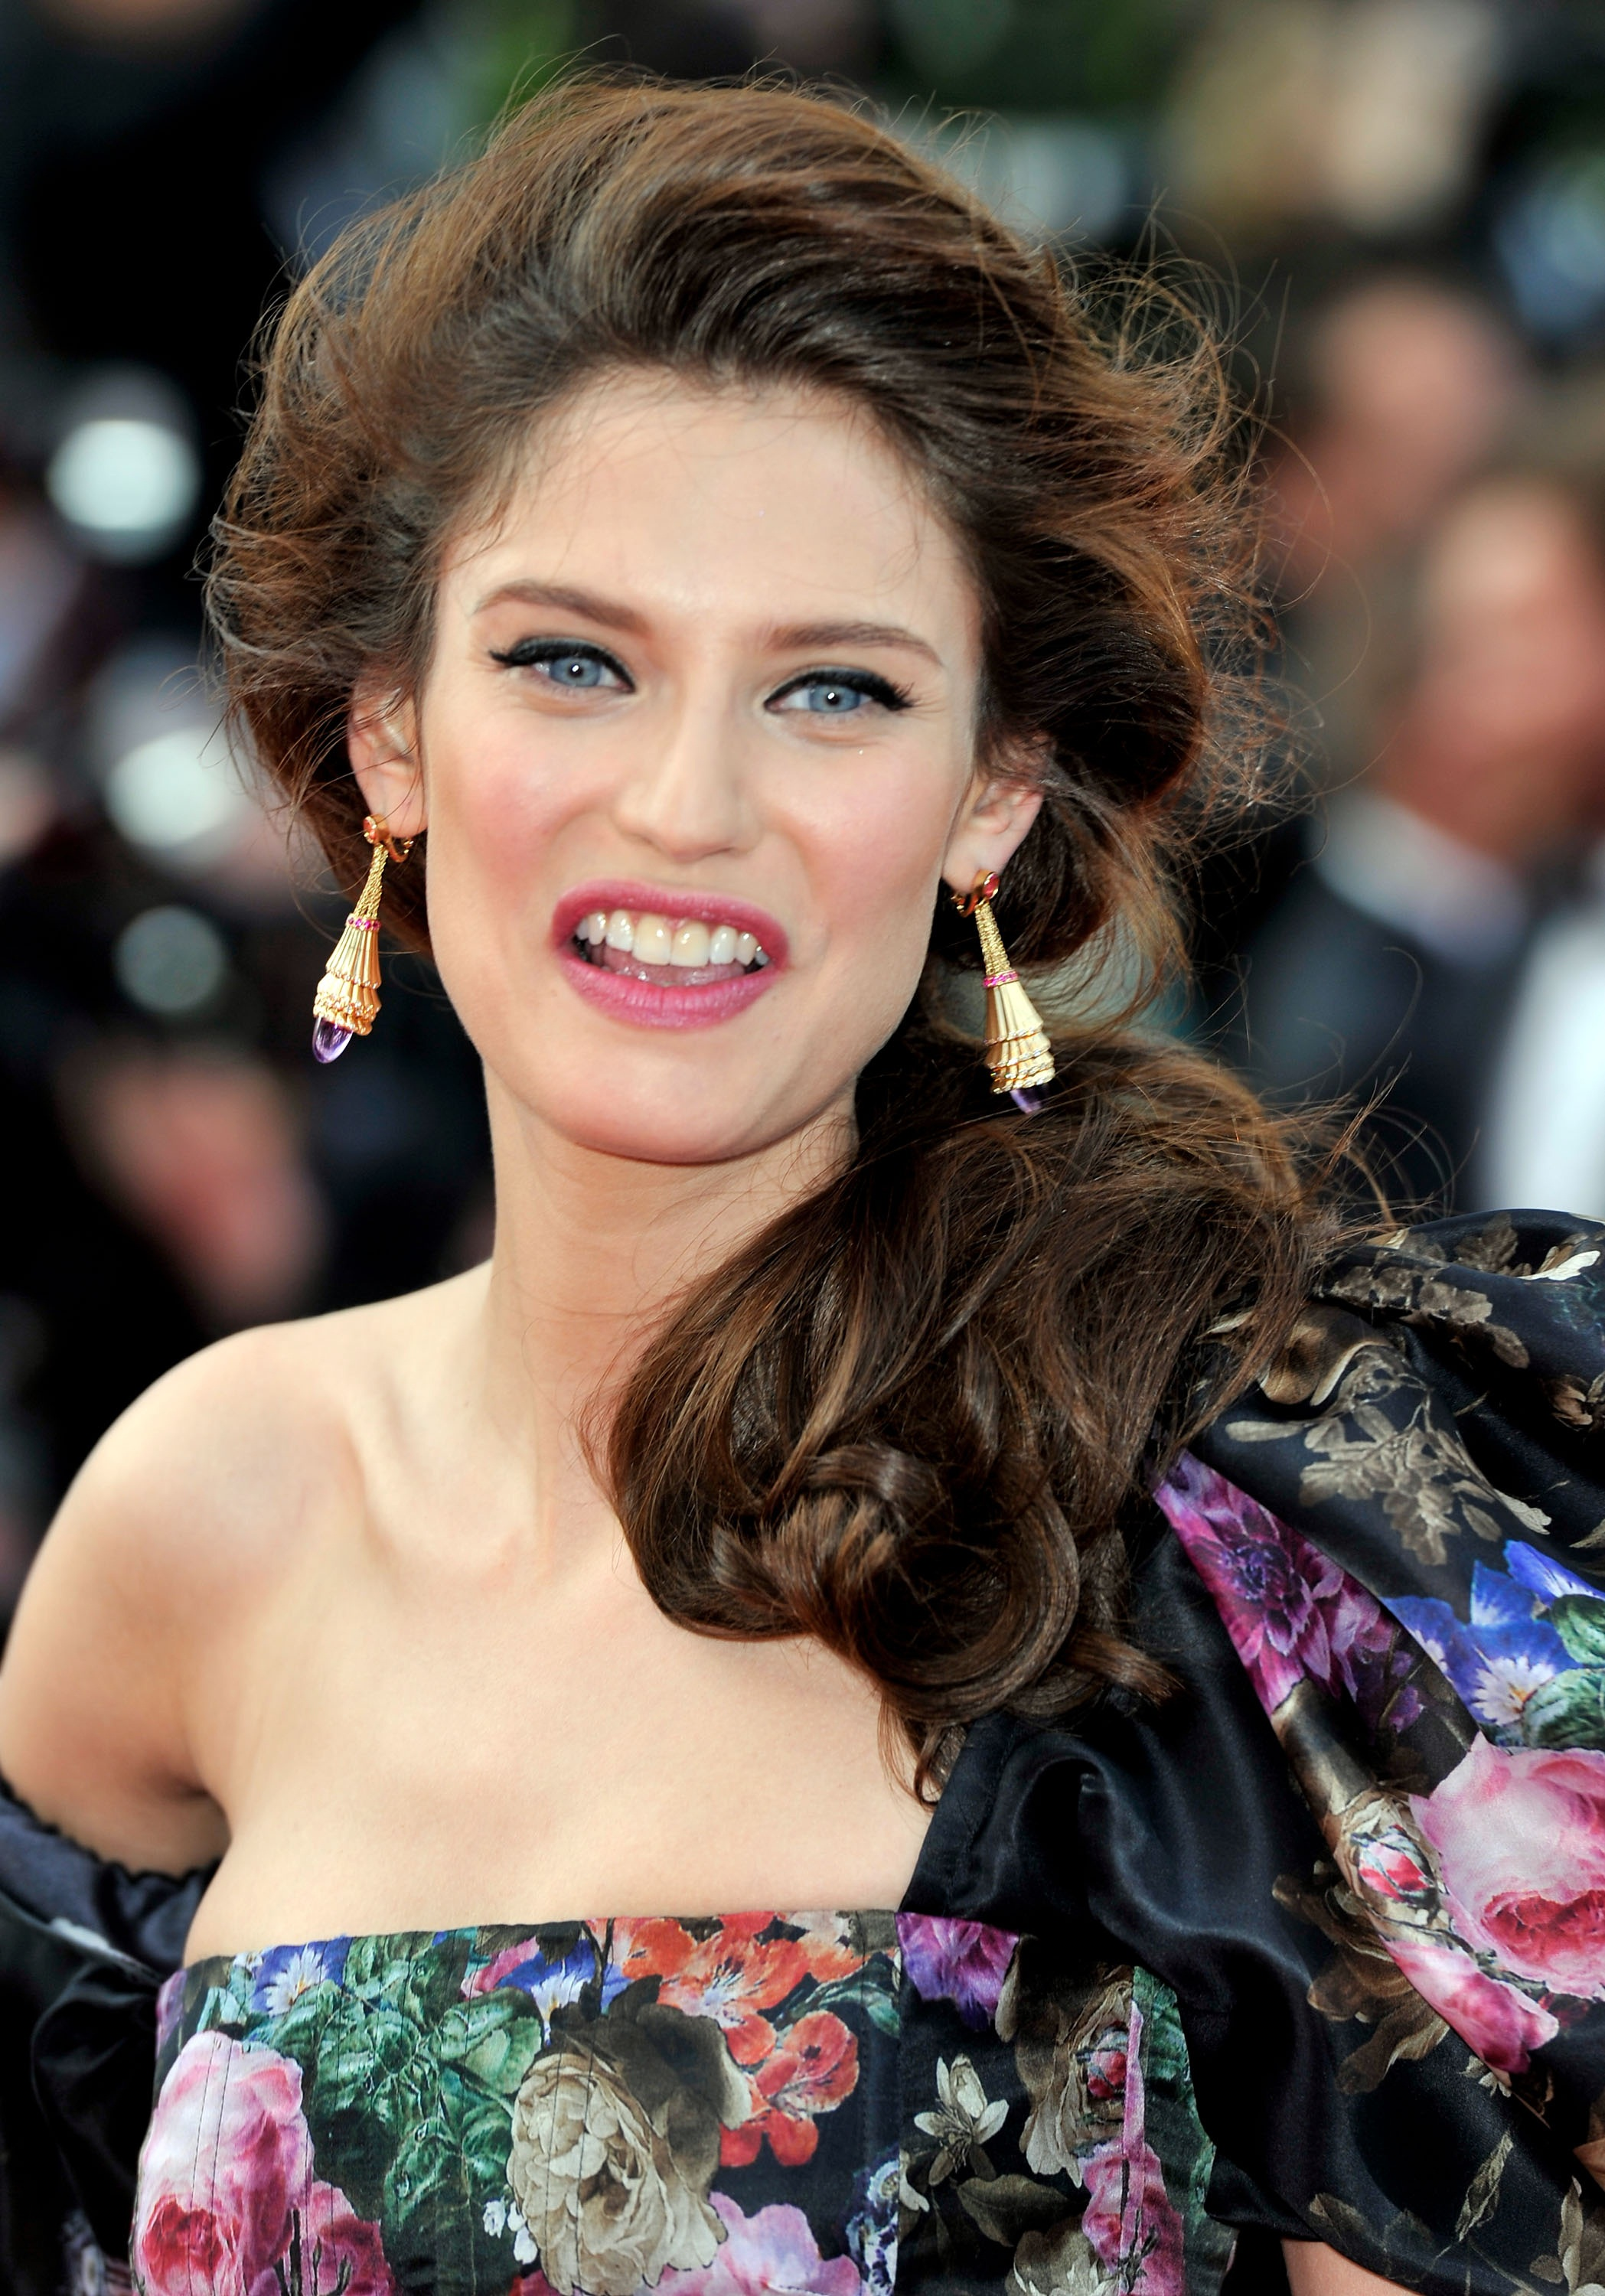 Bianca balti photo gallery Christopher Cousins - IMDb